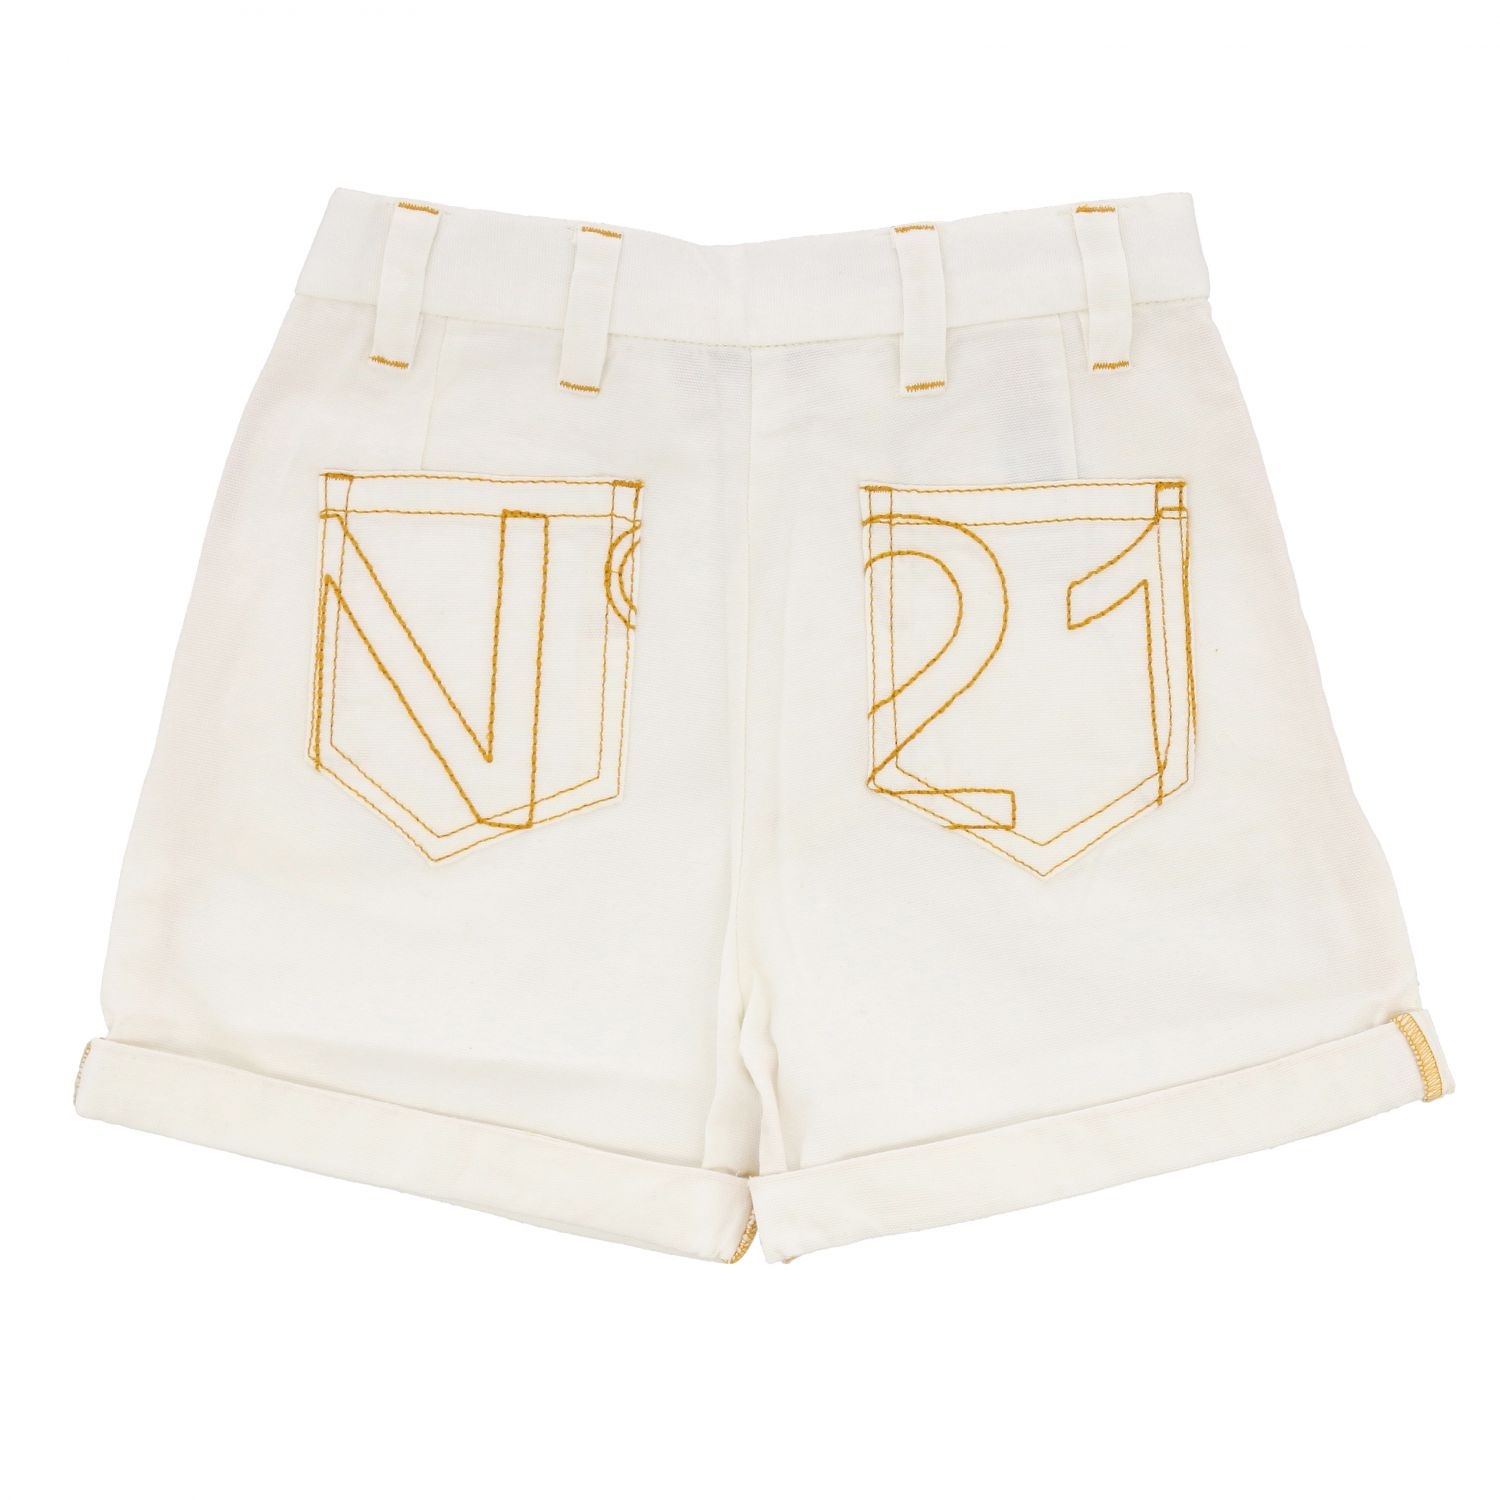 Shorts kids N° 21 white 2